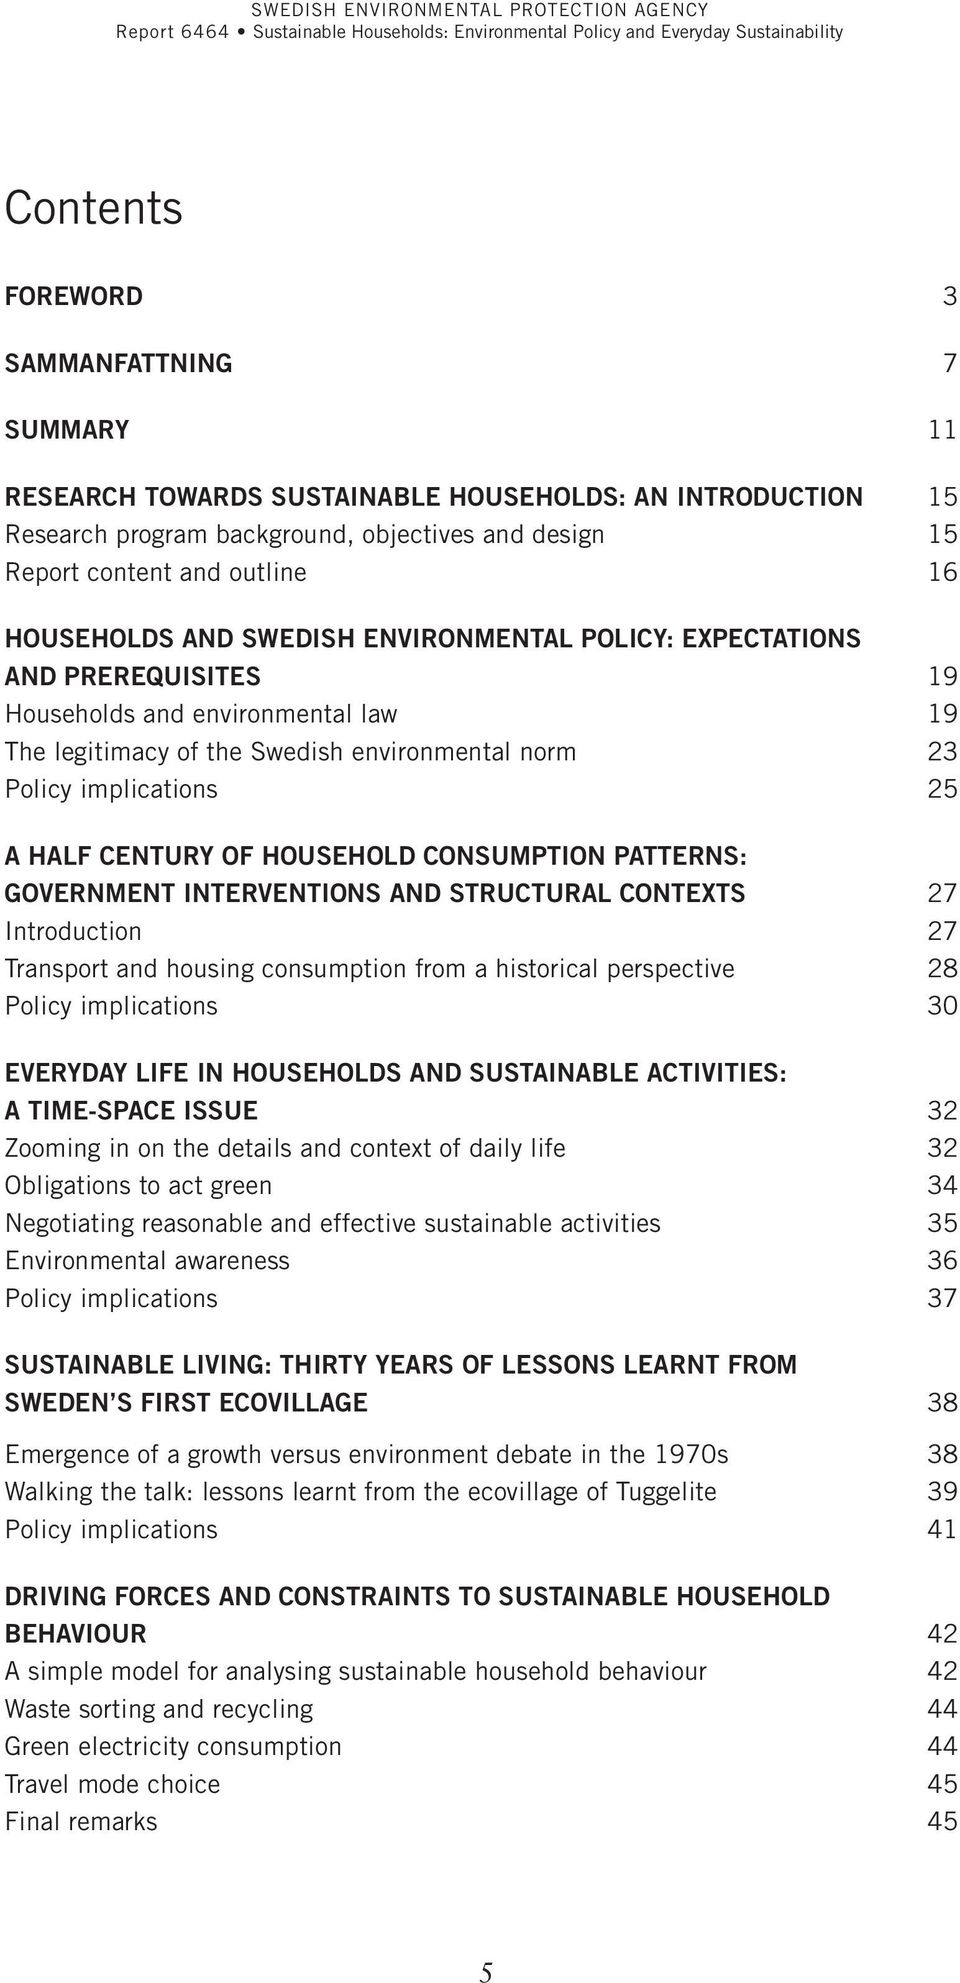 century of household consumption patterns: government interventions and structural contexts 27 Introduction 27 Transport and housing consumption from a historical perspective 28 Policy implications